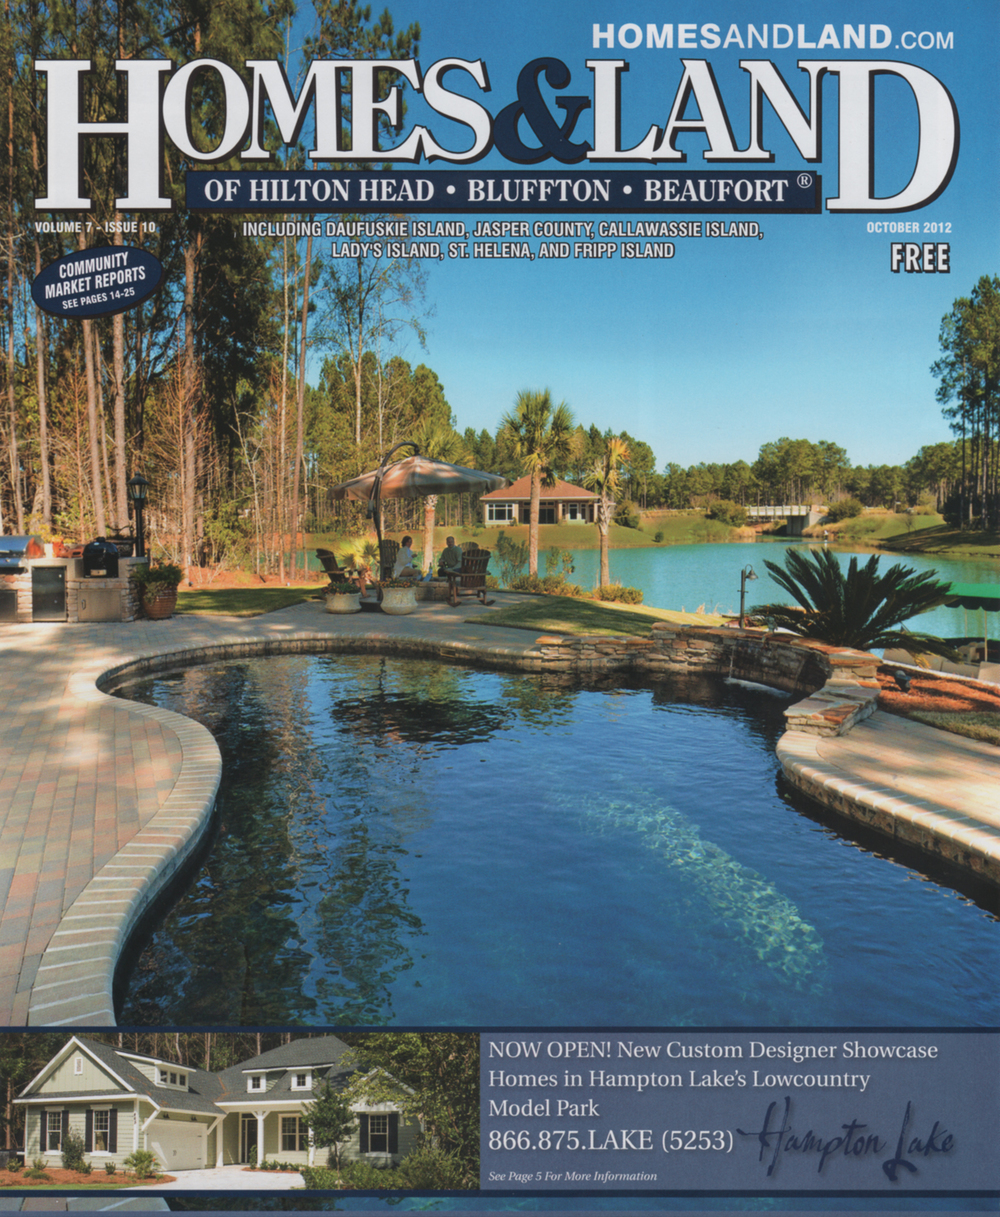 Homes_and_Land_Cover.jpg